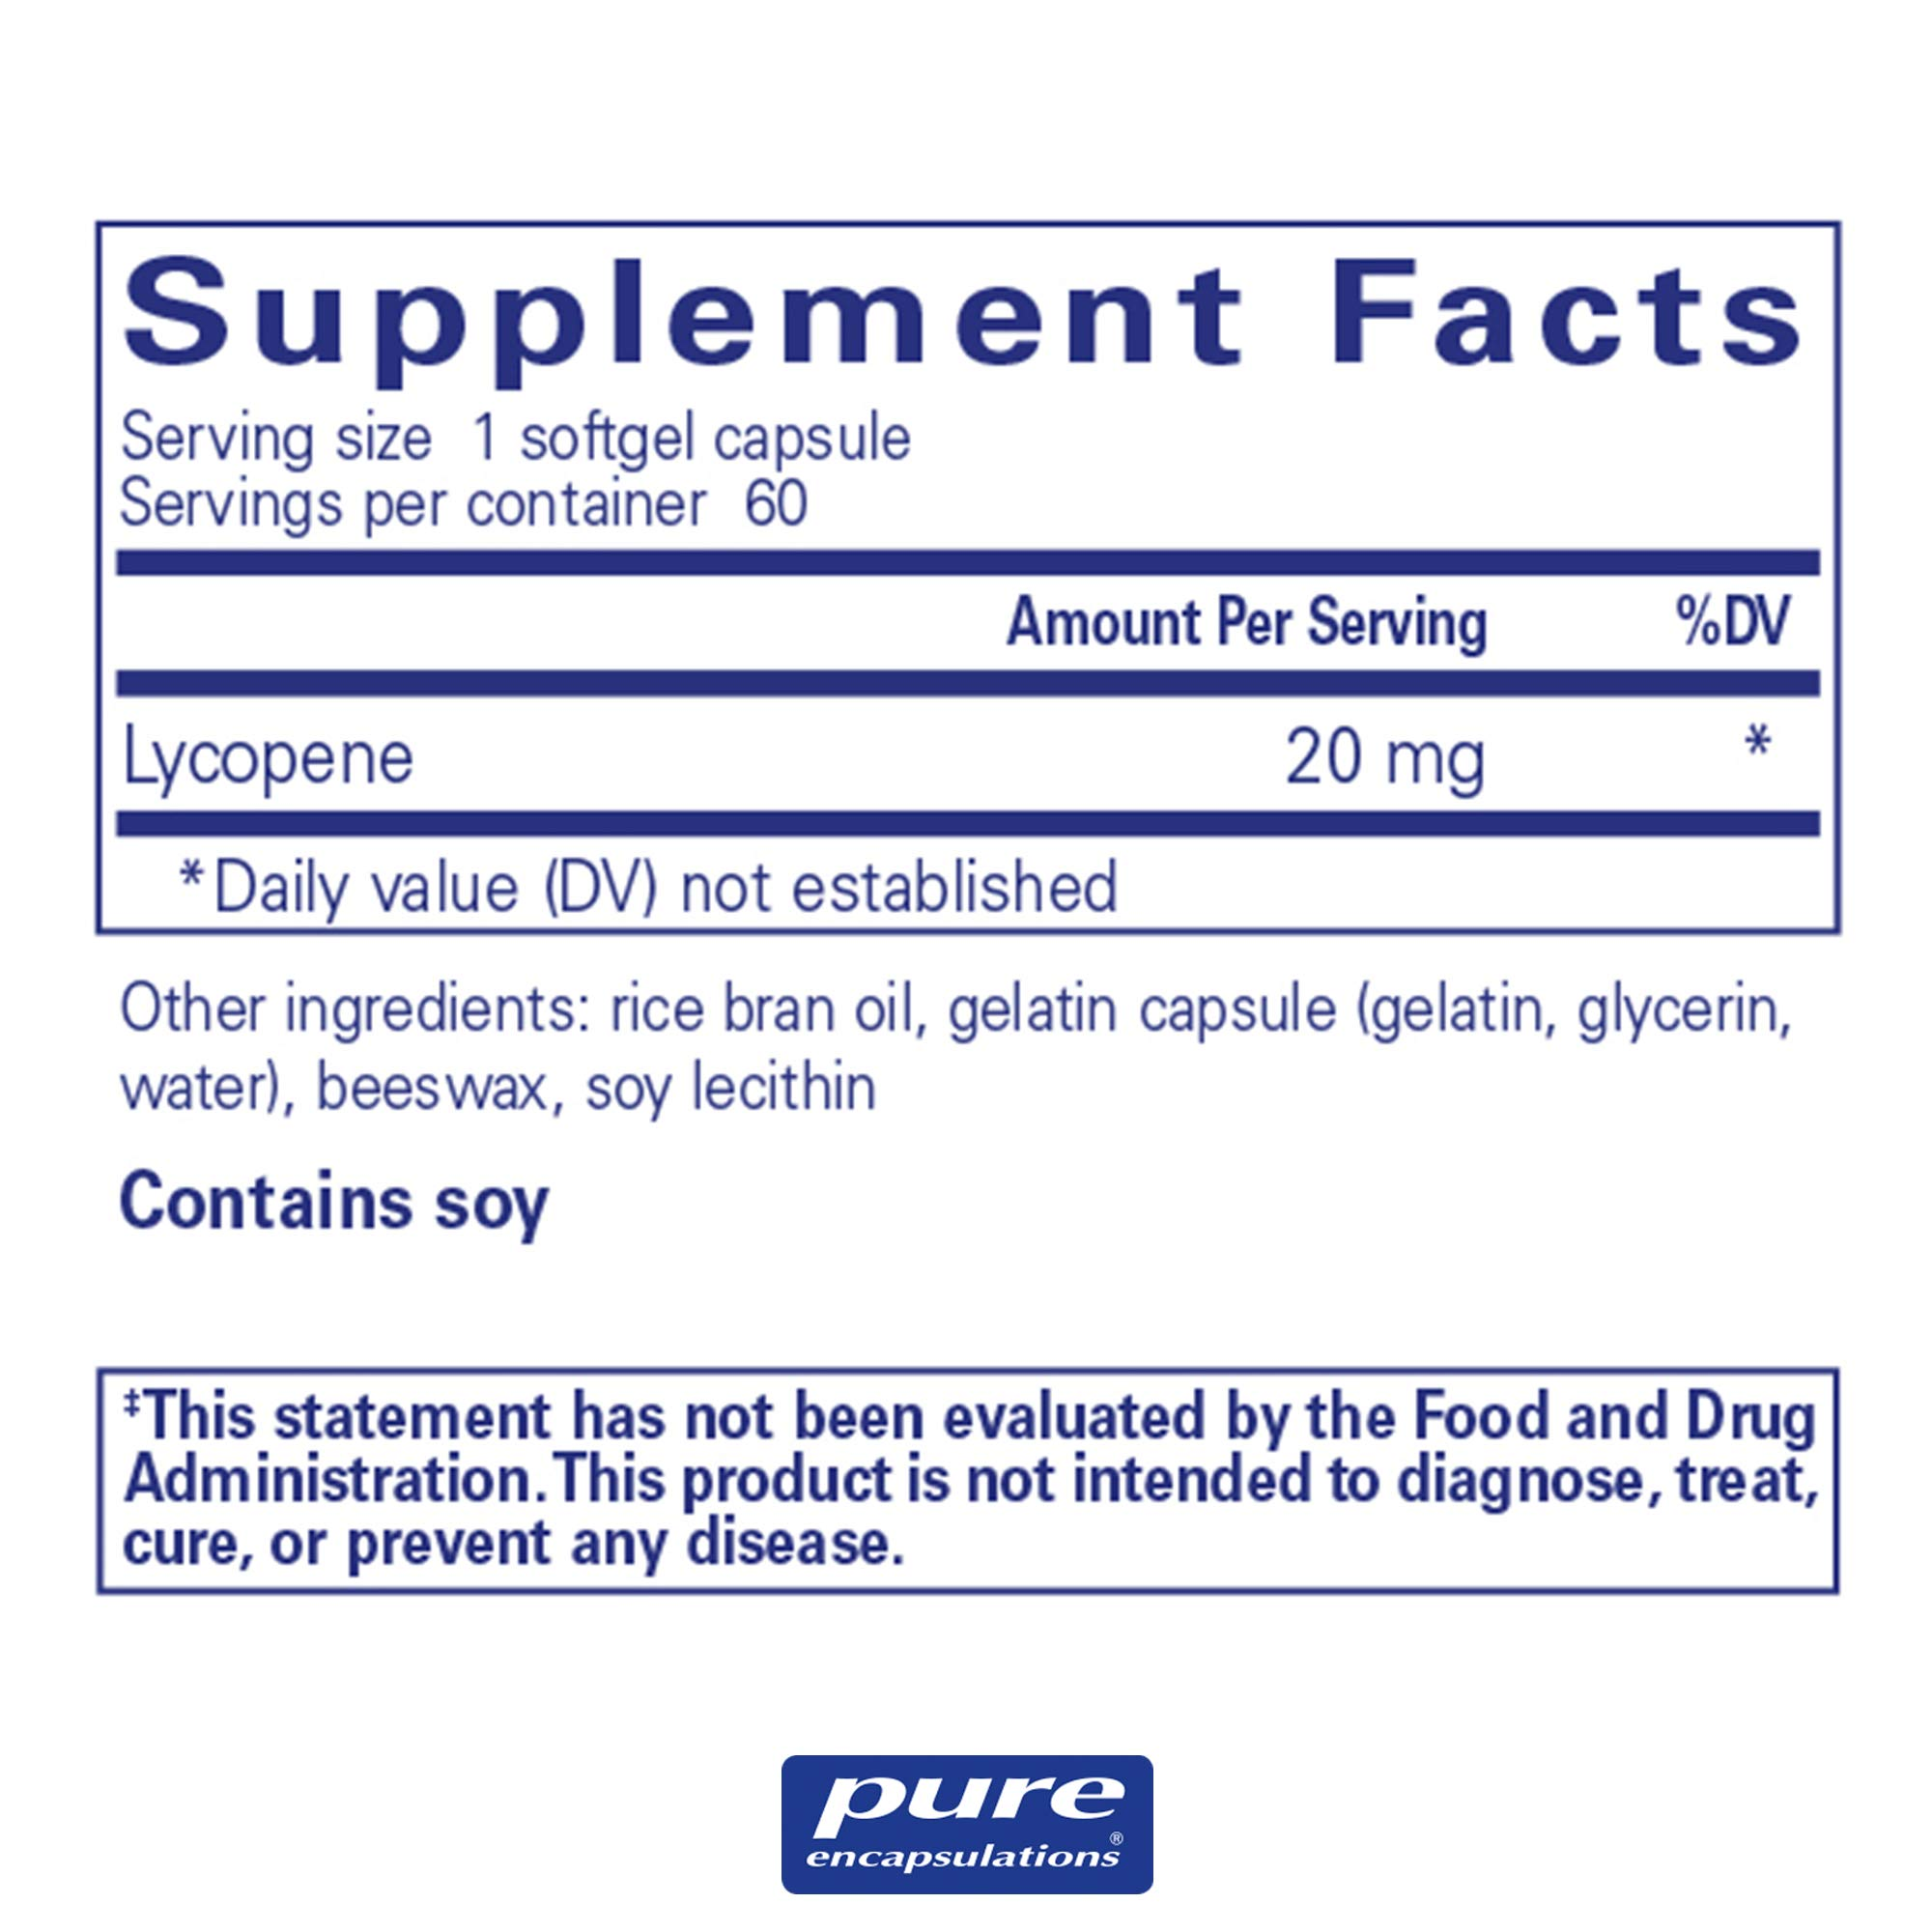 Pure Encapsulations - Lycopene 20 mg - Dietary Supplement for Prostate, Cellular and Macular Support* - 60 Softgel Capsules by Pure Encapsulations (Image #2)